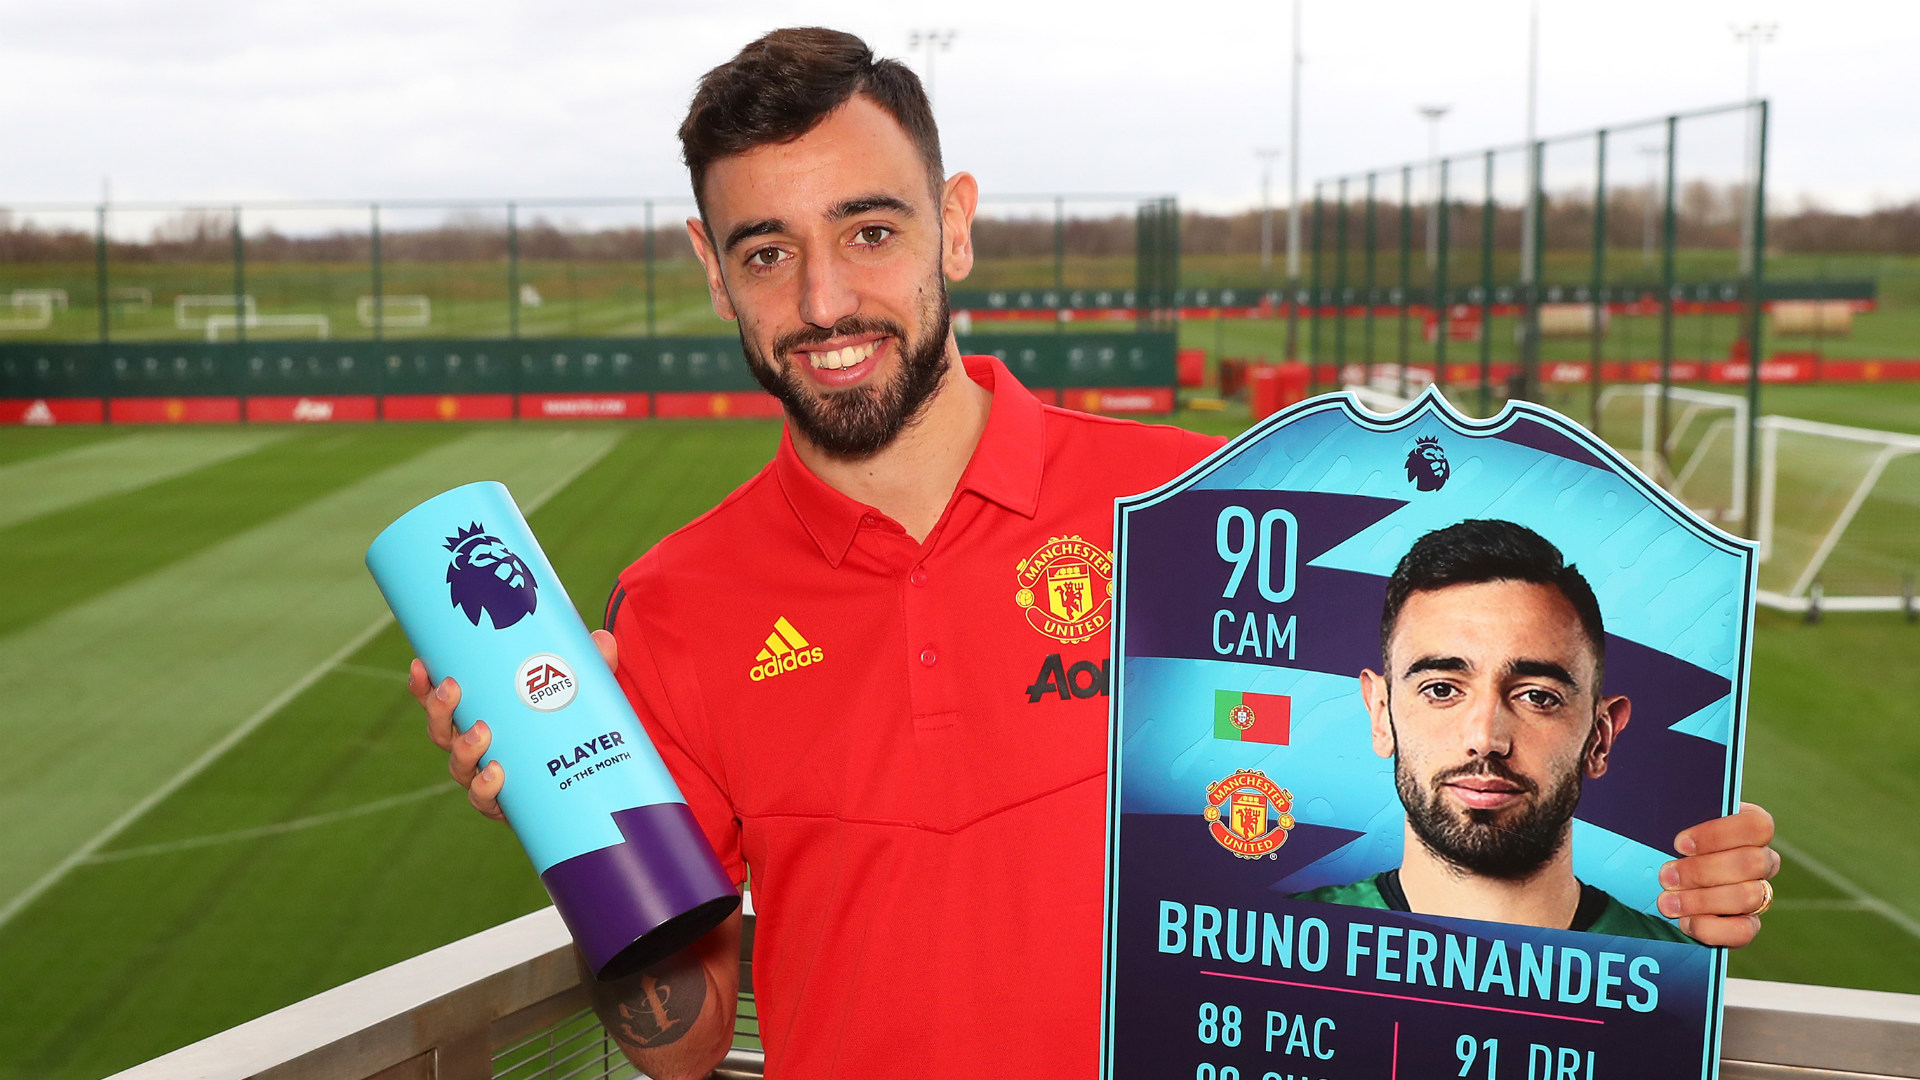 Bruno Fernandes crowns outstanding start in England with individual awards